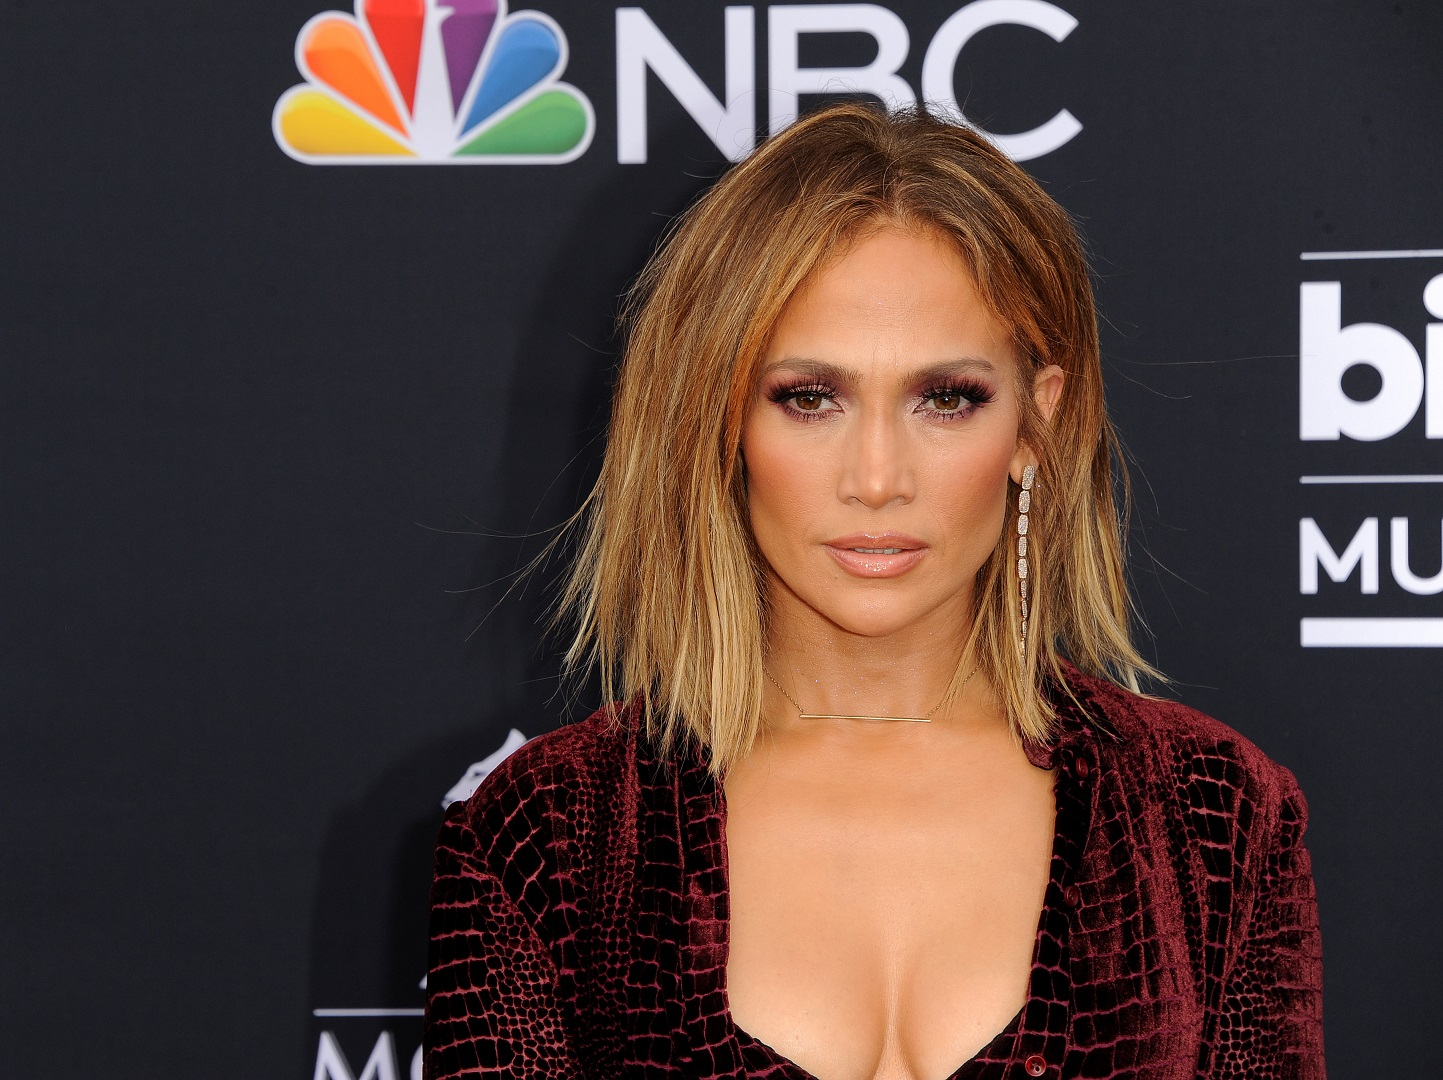 Jennifer Lopez Released an Empowering New Music Video Featuring Her Daughter Emme